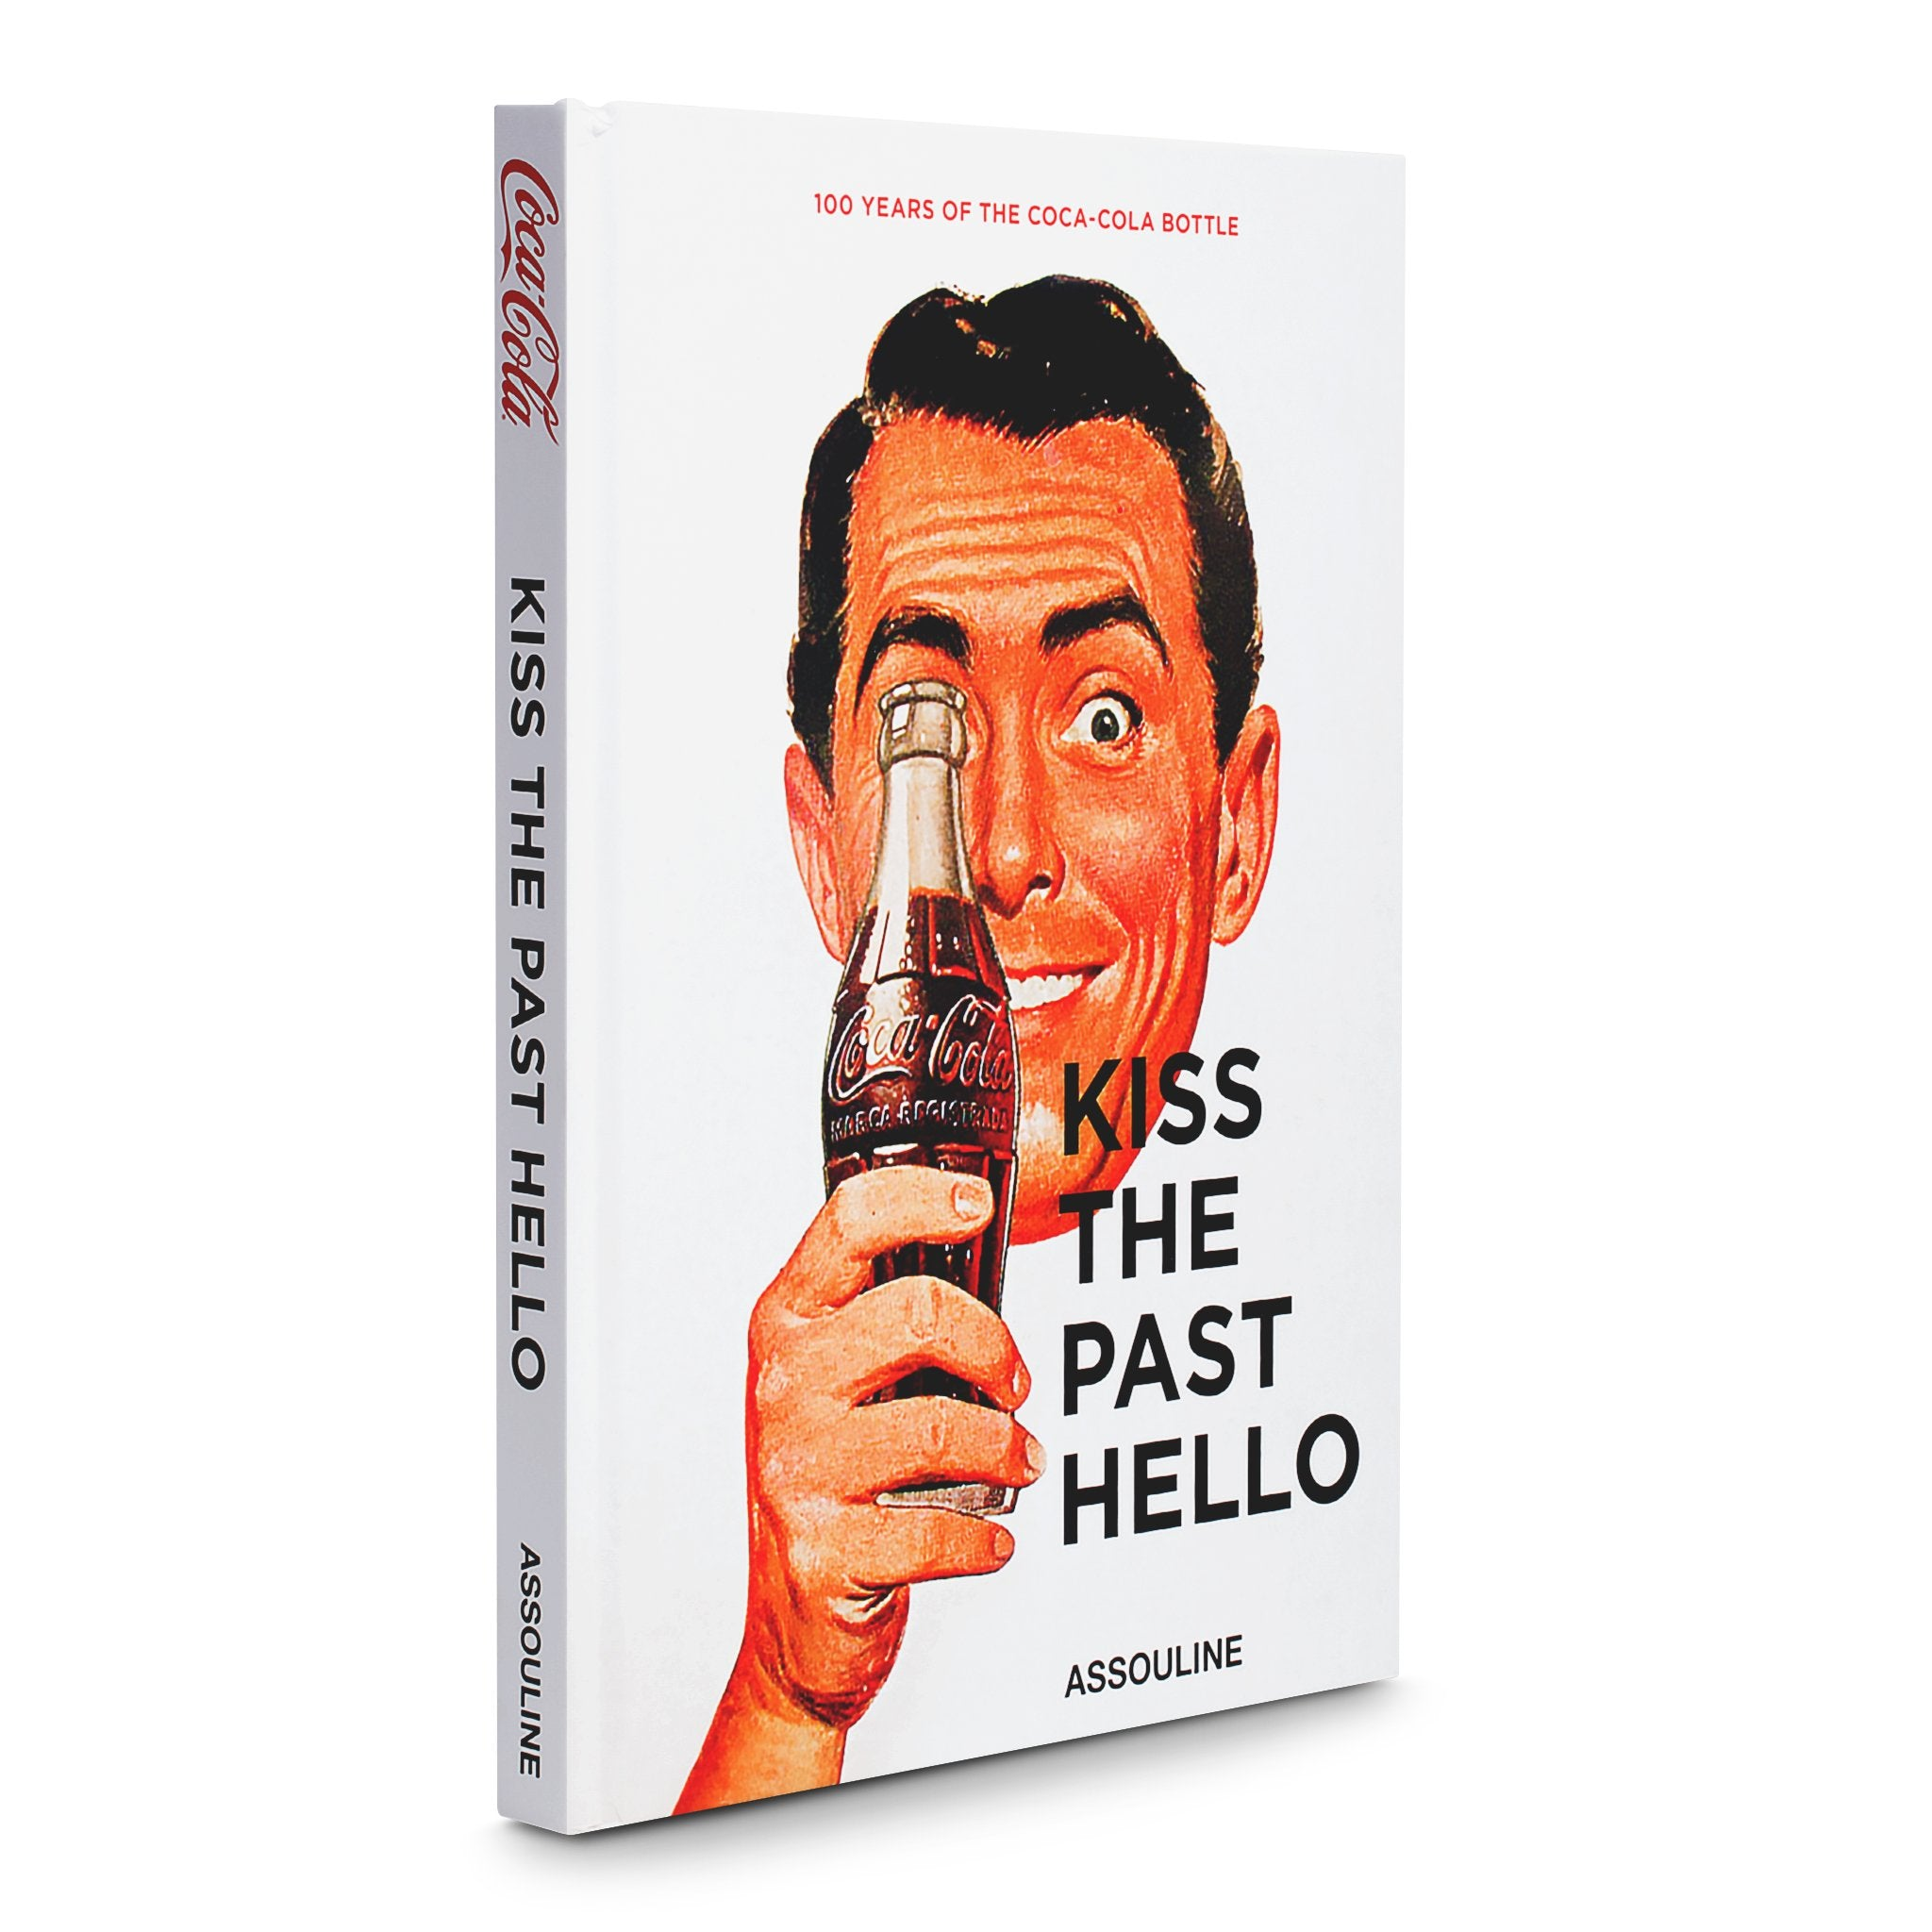 Kiss the Past Hello - Assouline